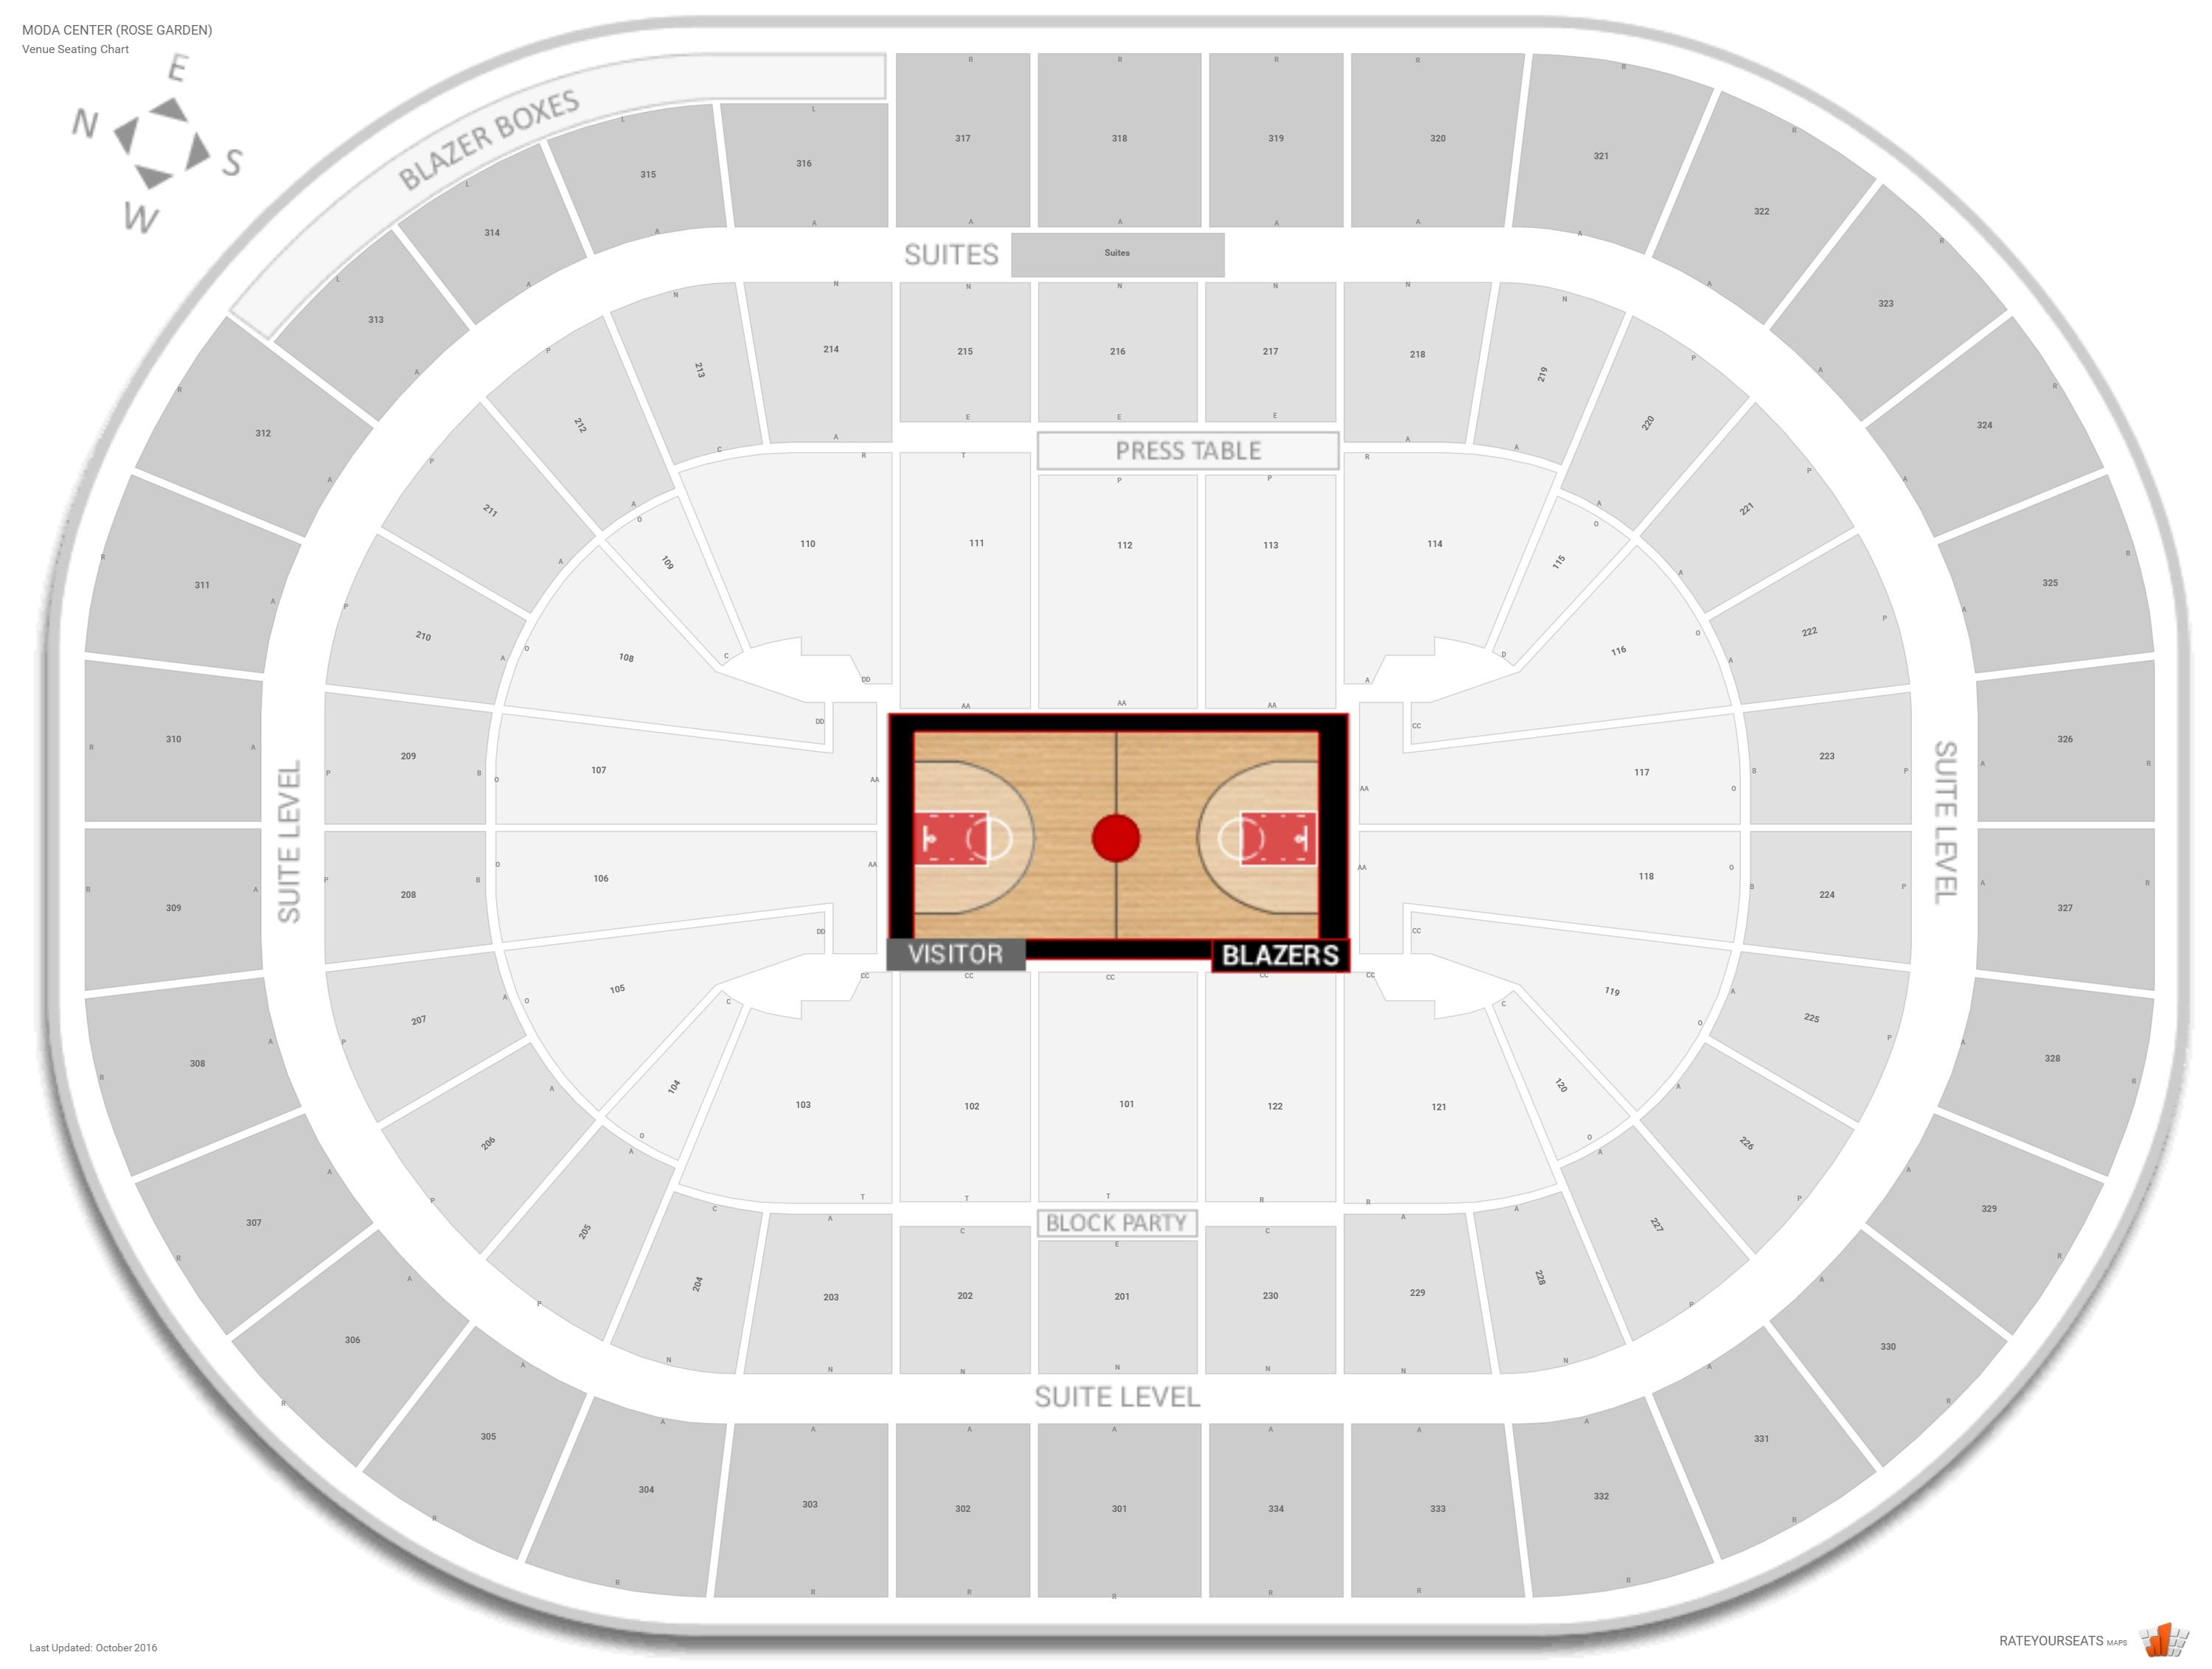 Portland trail blazers seating guide moda center rose garden